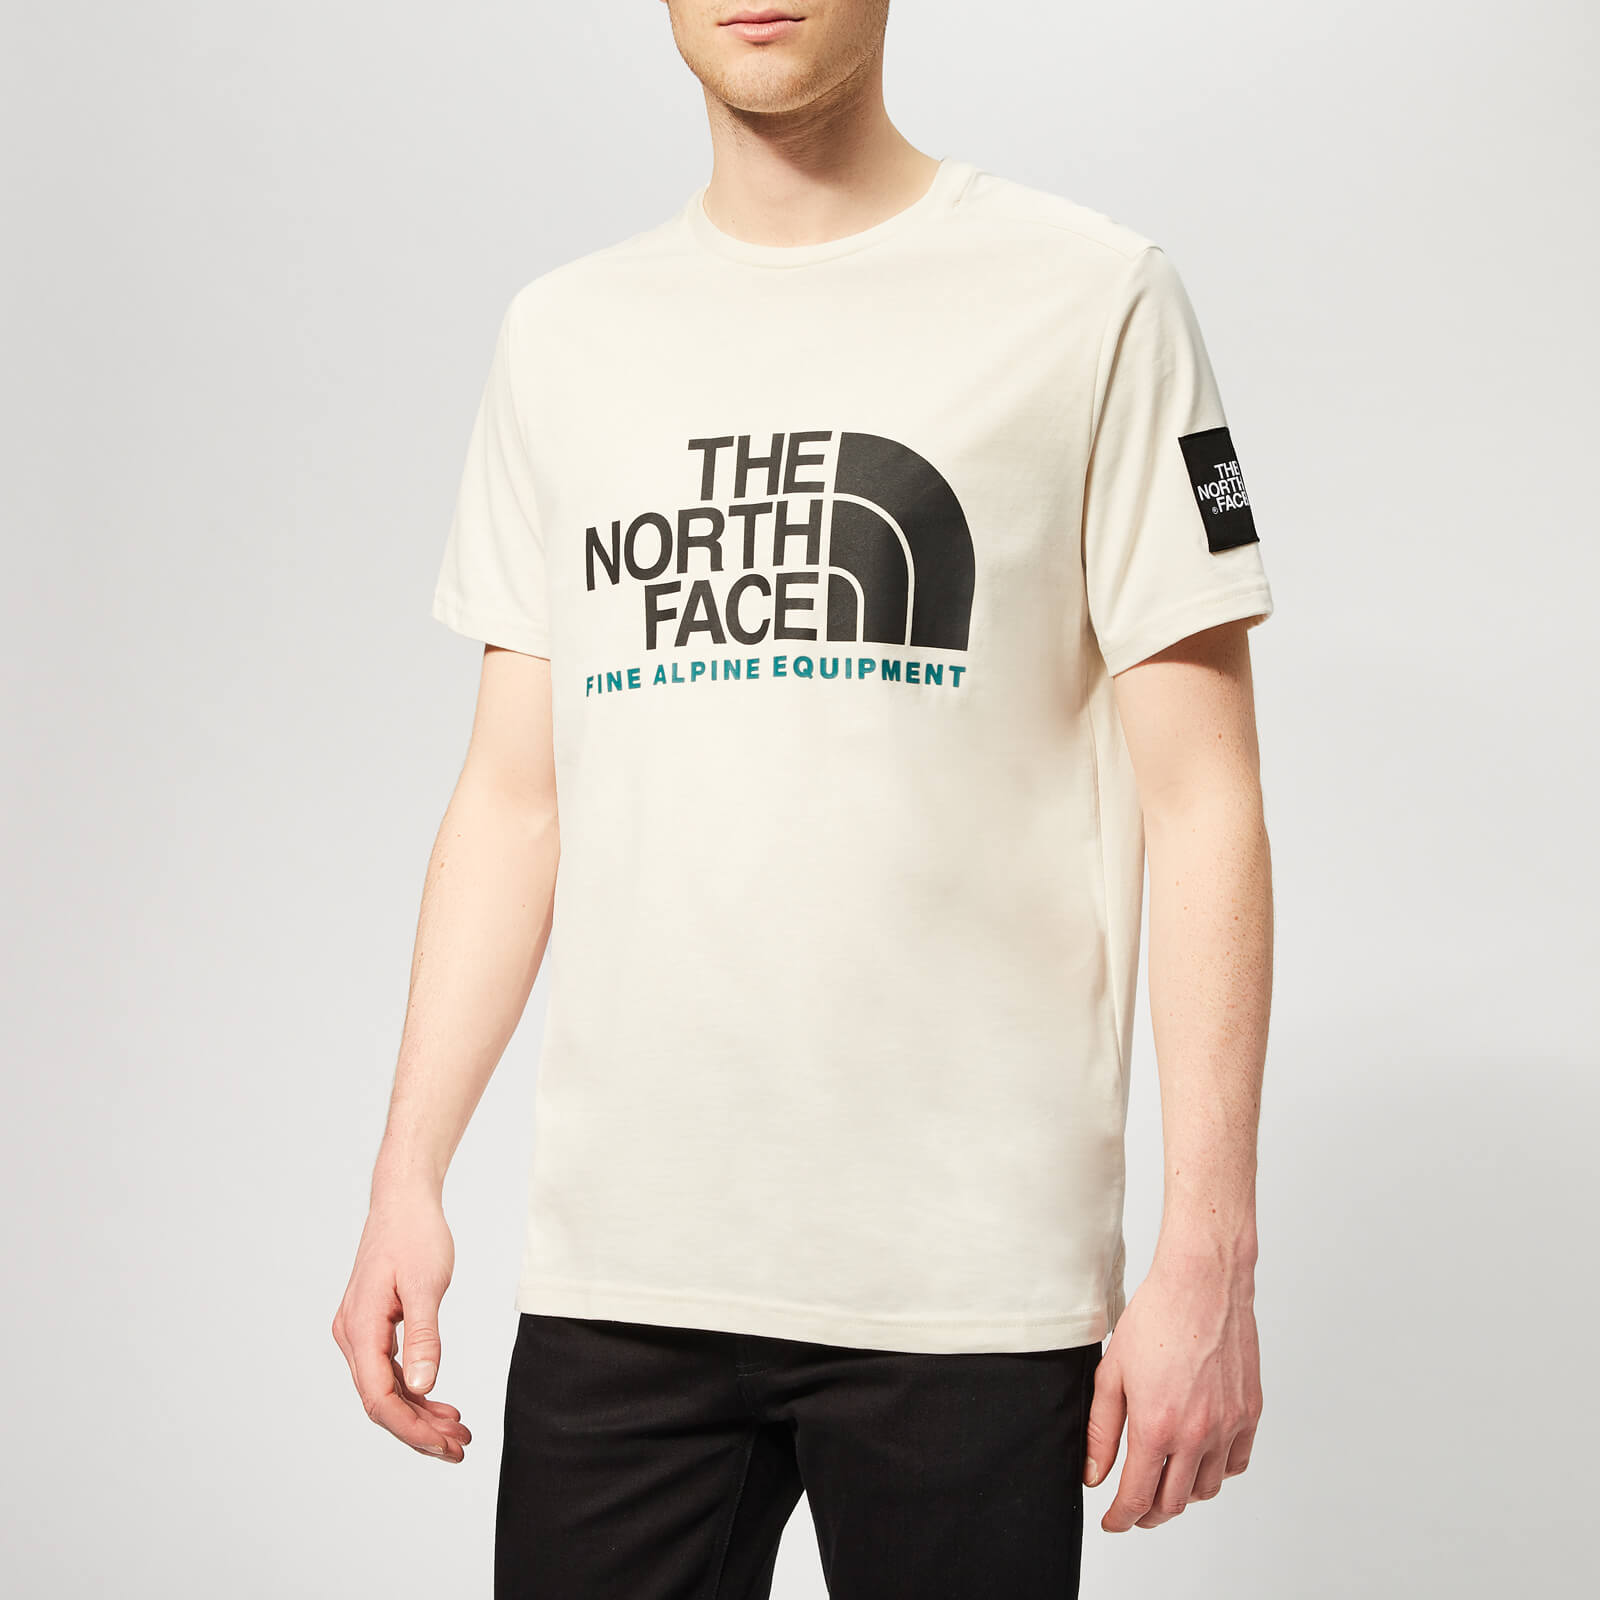 1bf4dff5f The North Face Men's Short Sleeve Fine Alp Equtee T-Shirt - Vintage White